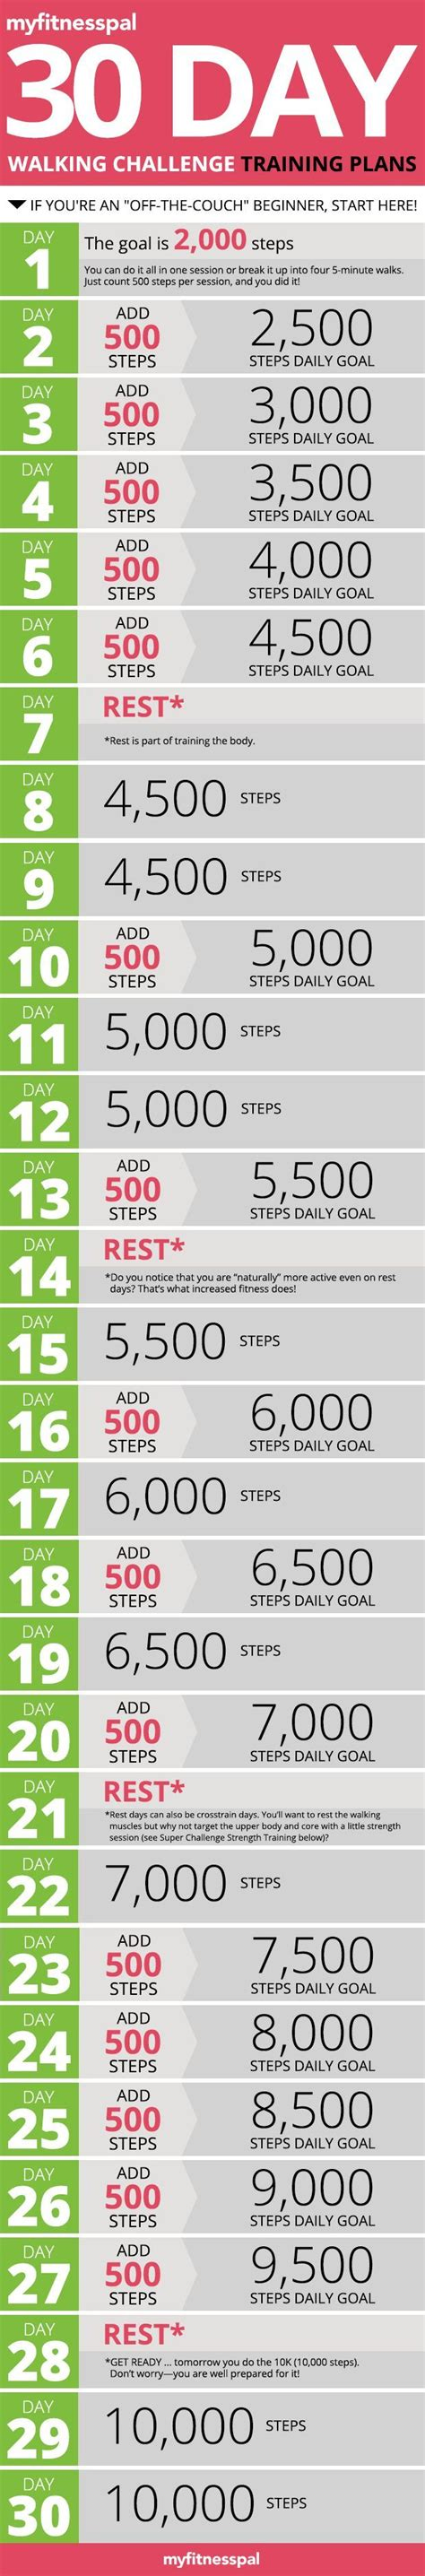 fitbit 30 day challenge 30 day walking challenge to get to 10 000 steps with your